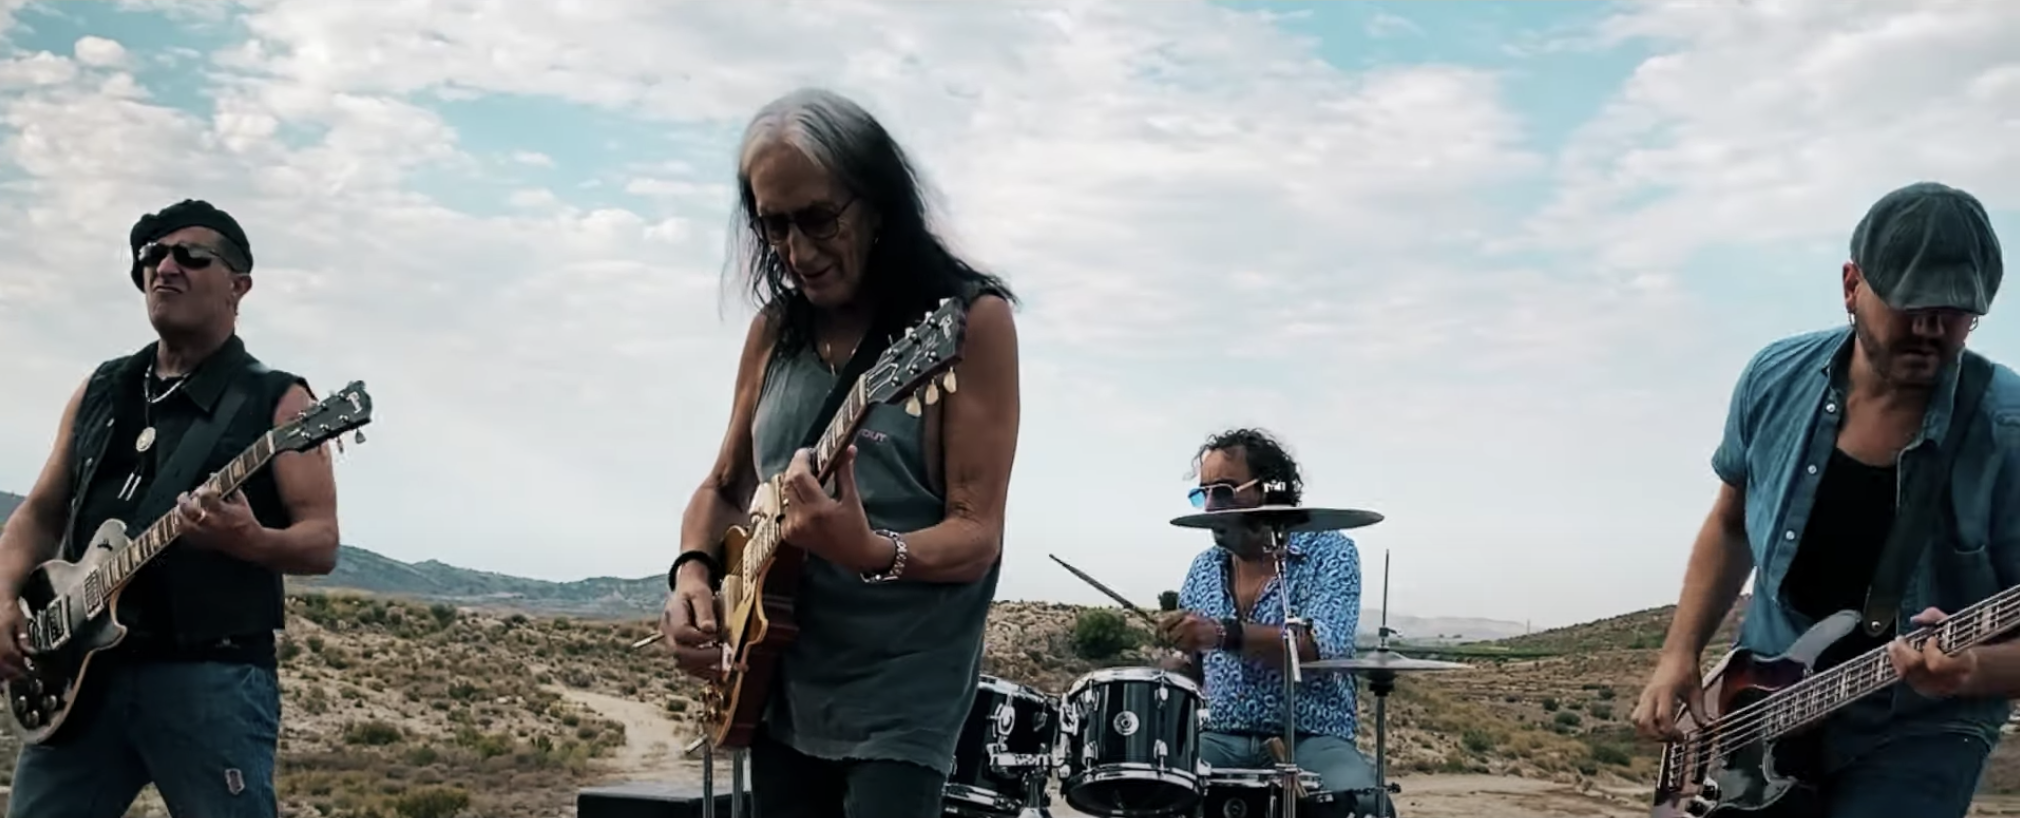 KEN HENSLEY| Have you seen the brand-new music video for Ken Hensley's  'Lost (My Guardian)'? Watch and stream the track here! - Cherry Red Records